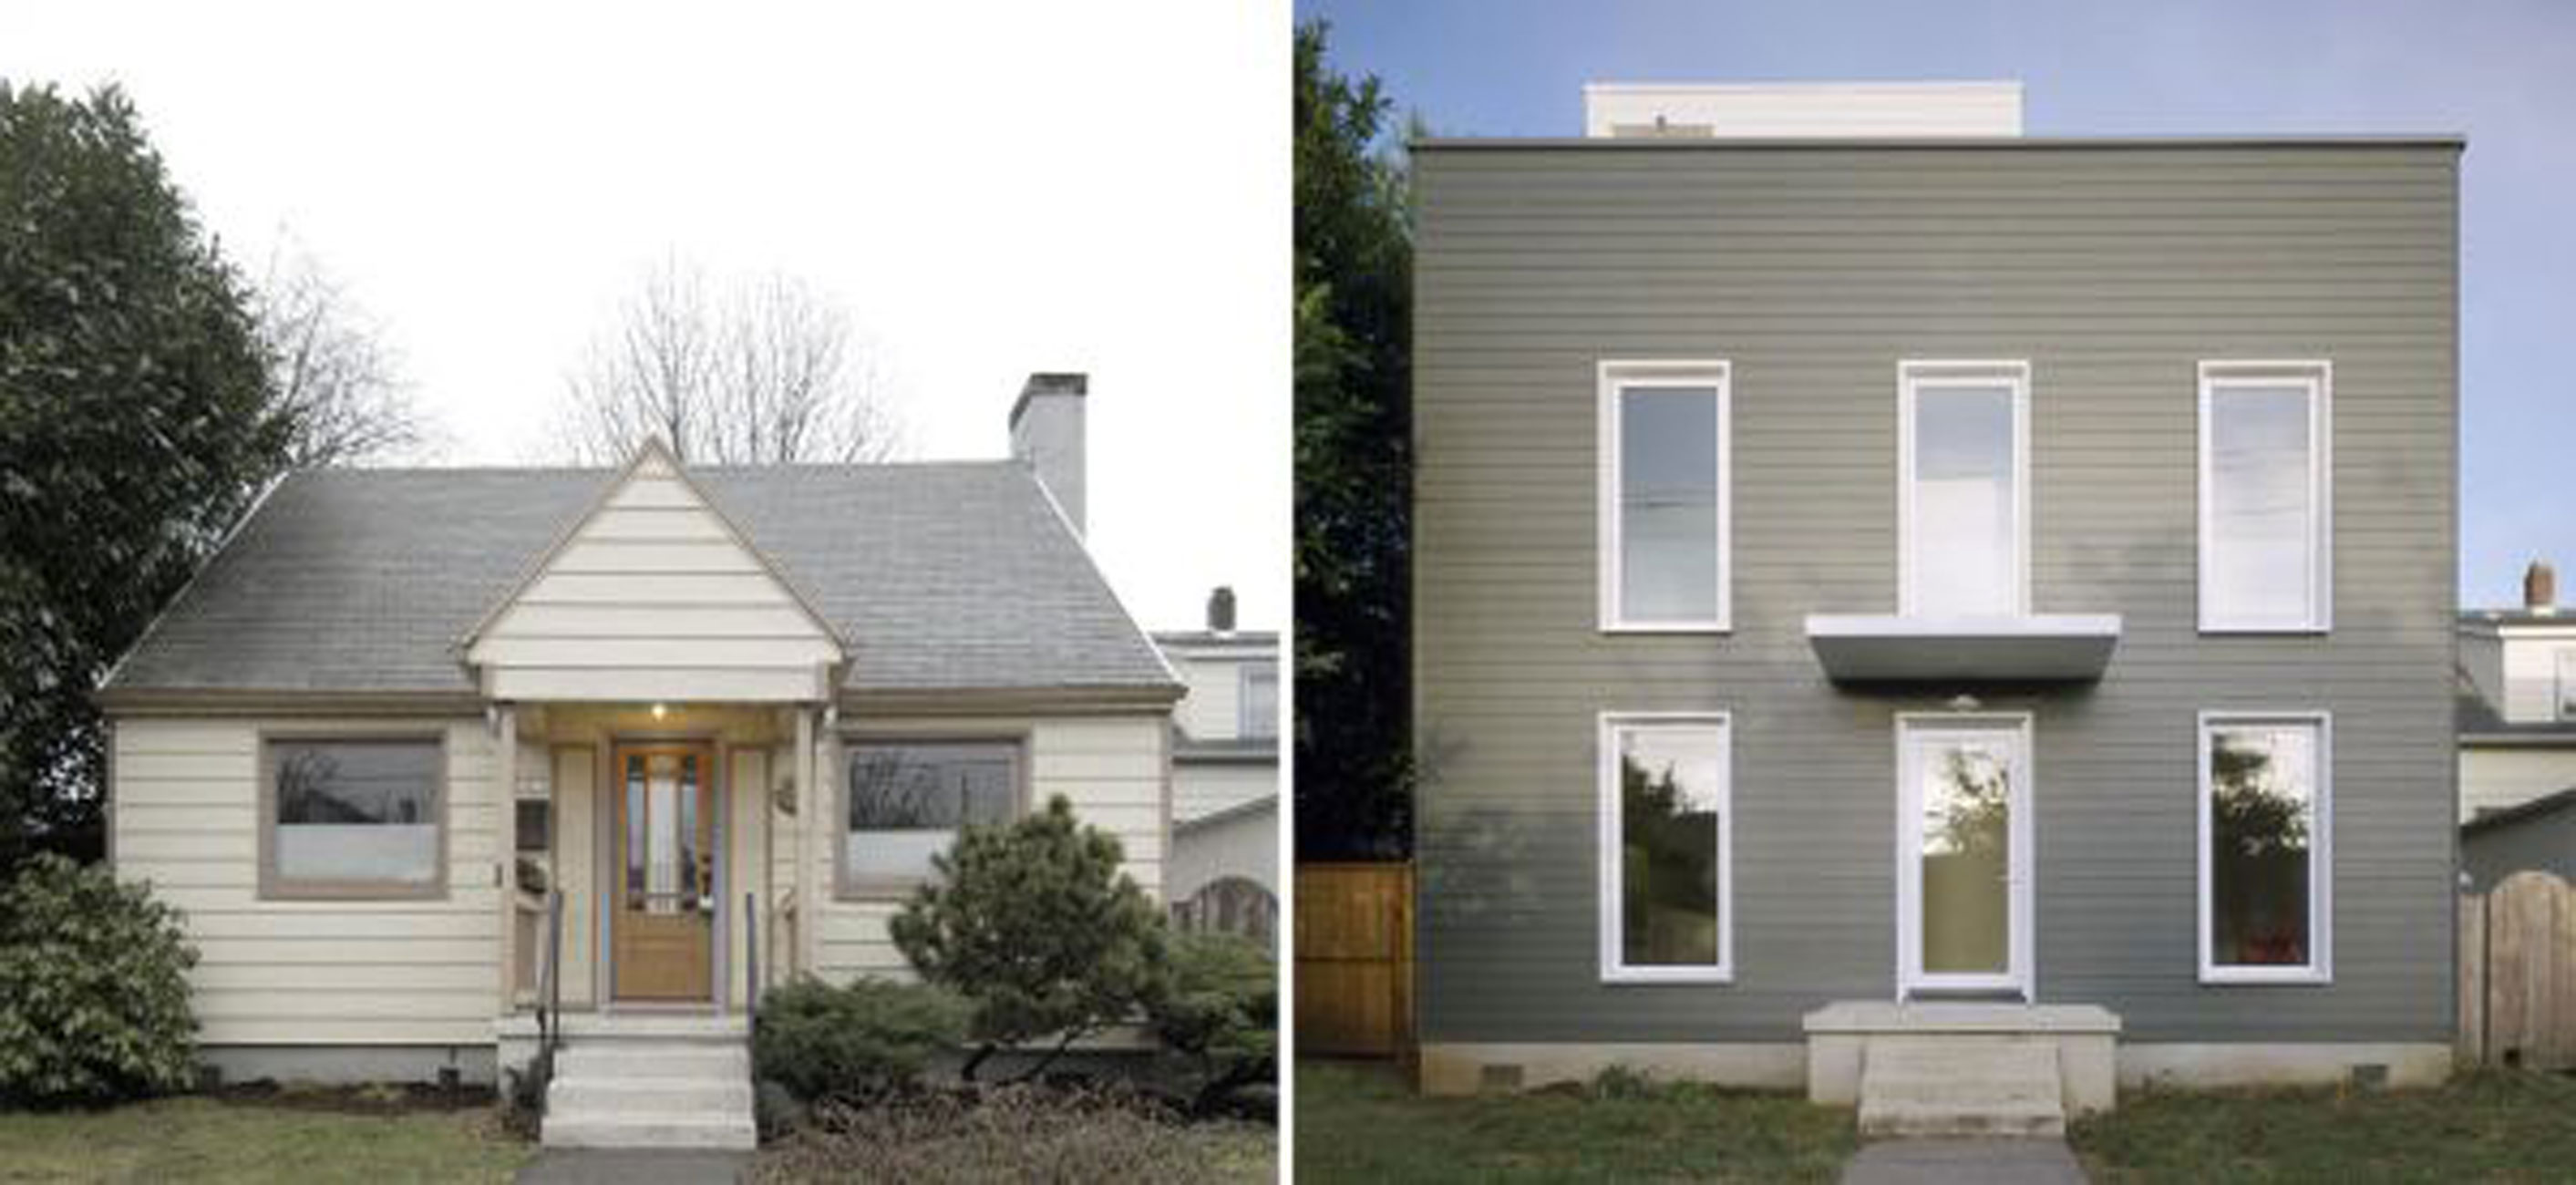 Beautiful Old House Renovated Into A Minimalist Style House Design